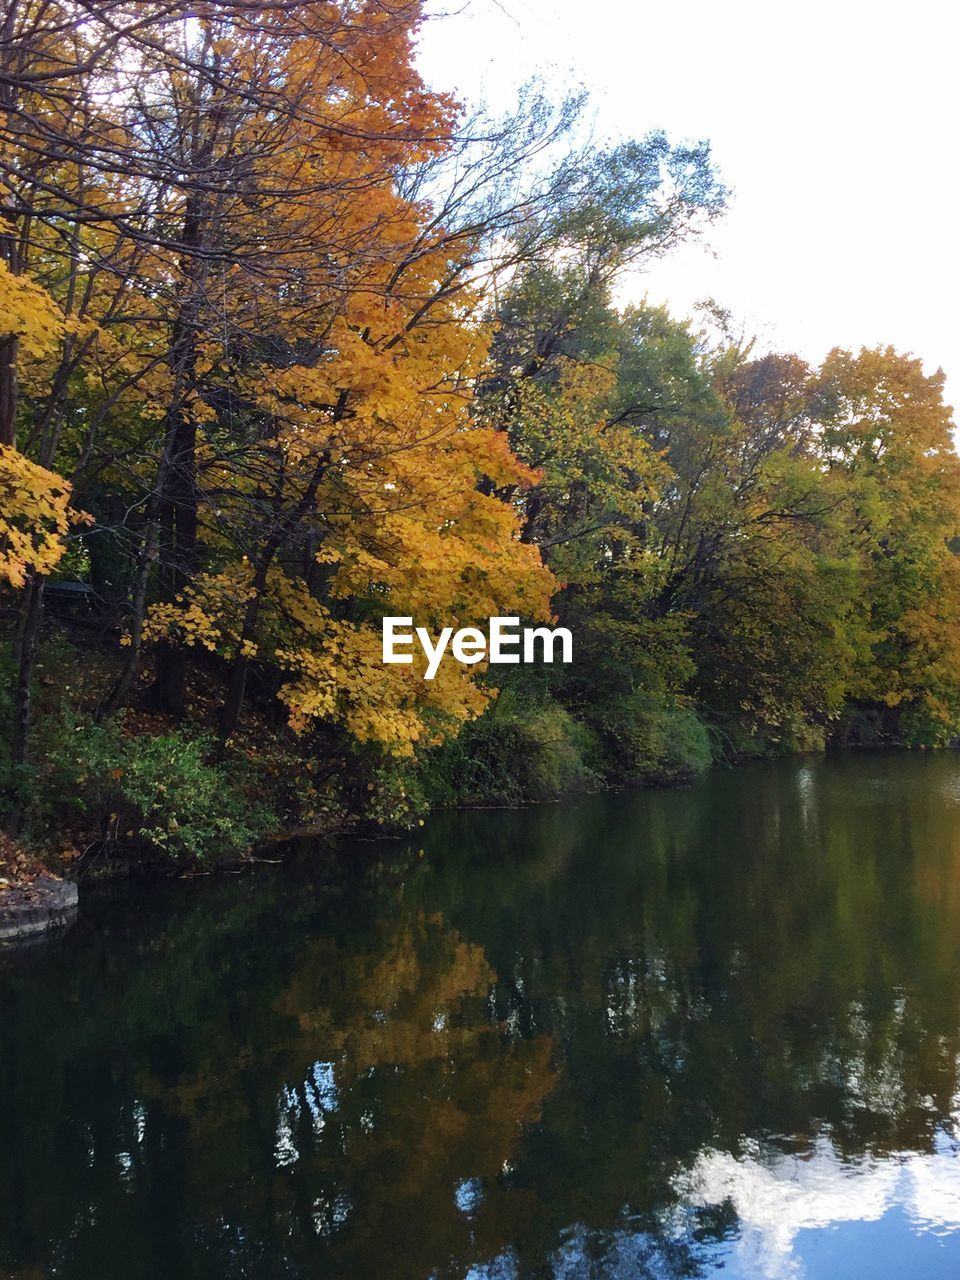 tree, nature, autumn, beauty in nature, change, tranquility, scenics, reflection, tranquil scene, growth, water, leaf, outdoors, idyllic, no people, lake, day, forest, sky